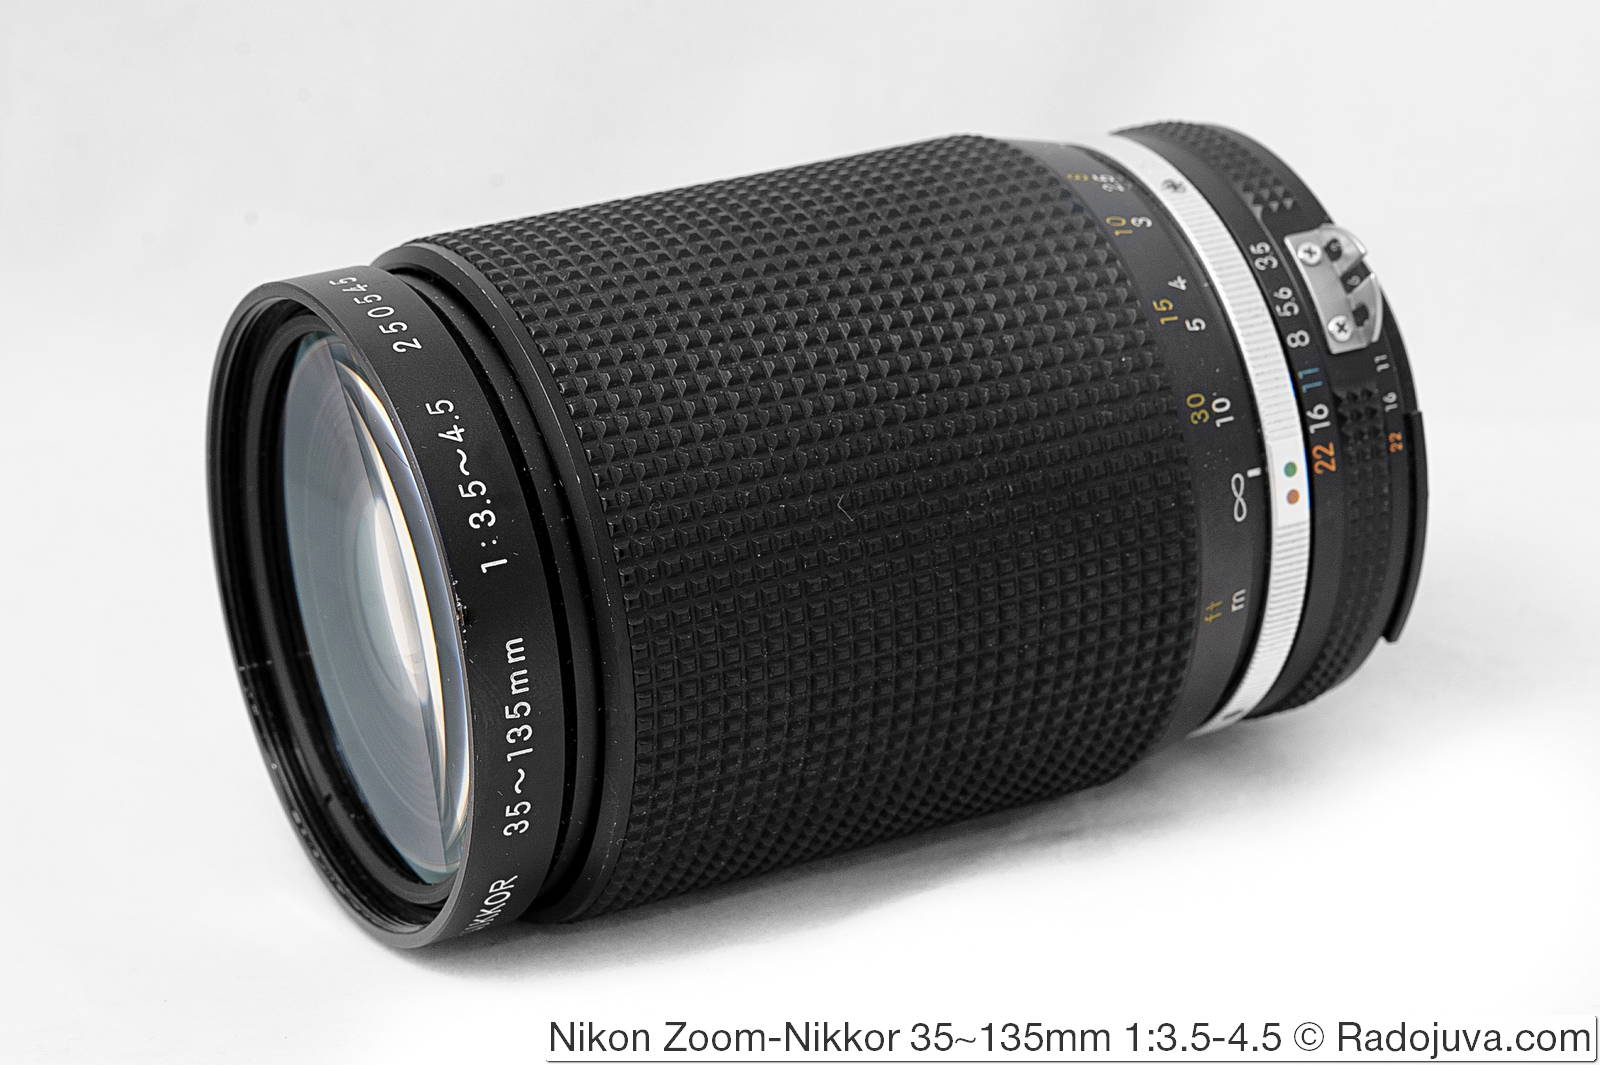 Nikon Zoom-Nikkor 35-135mm 1:3.5-4.5 (AI-S)